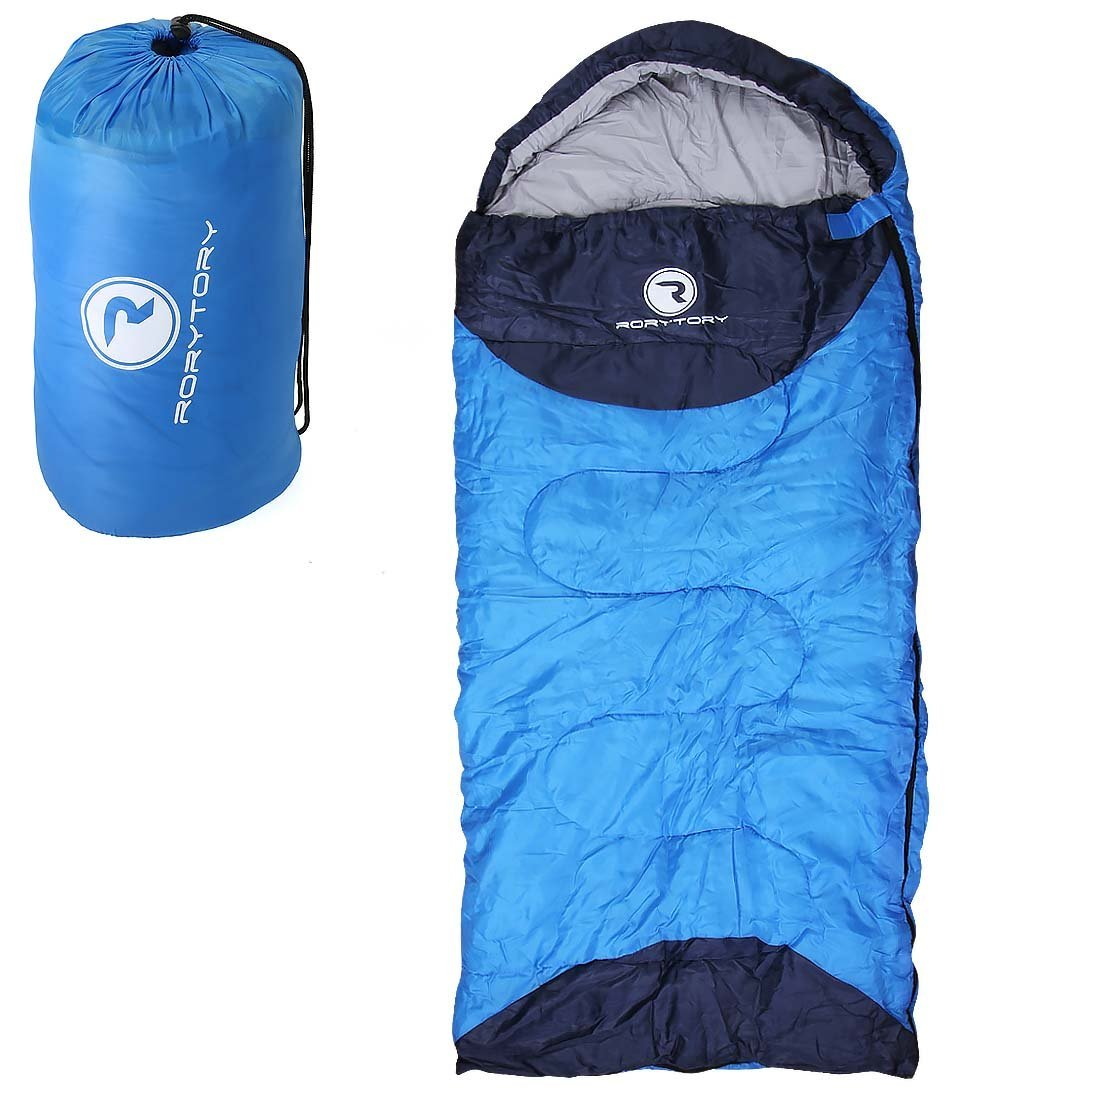 Rorytory Kids All Weather Mummy Style Camping Sleeping Bag With Carrying Case